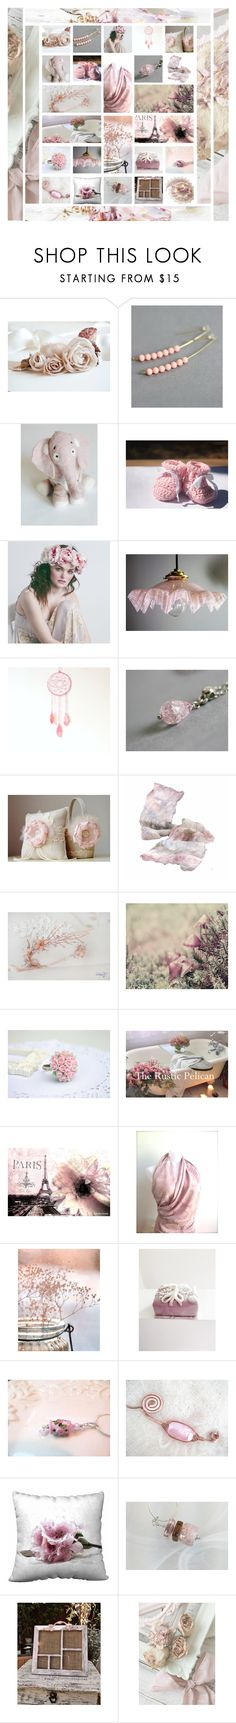 """""""Untitled #496"""" by andreadawn1 ❤ liked on Polyvore featuring WALL"""